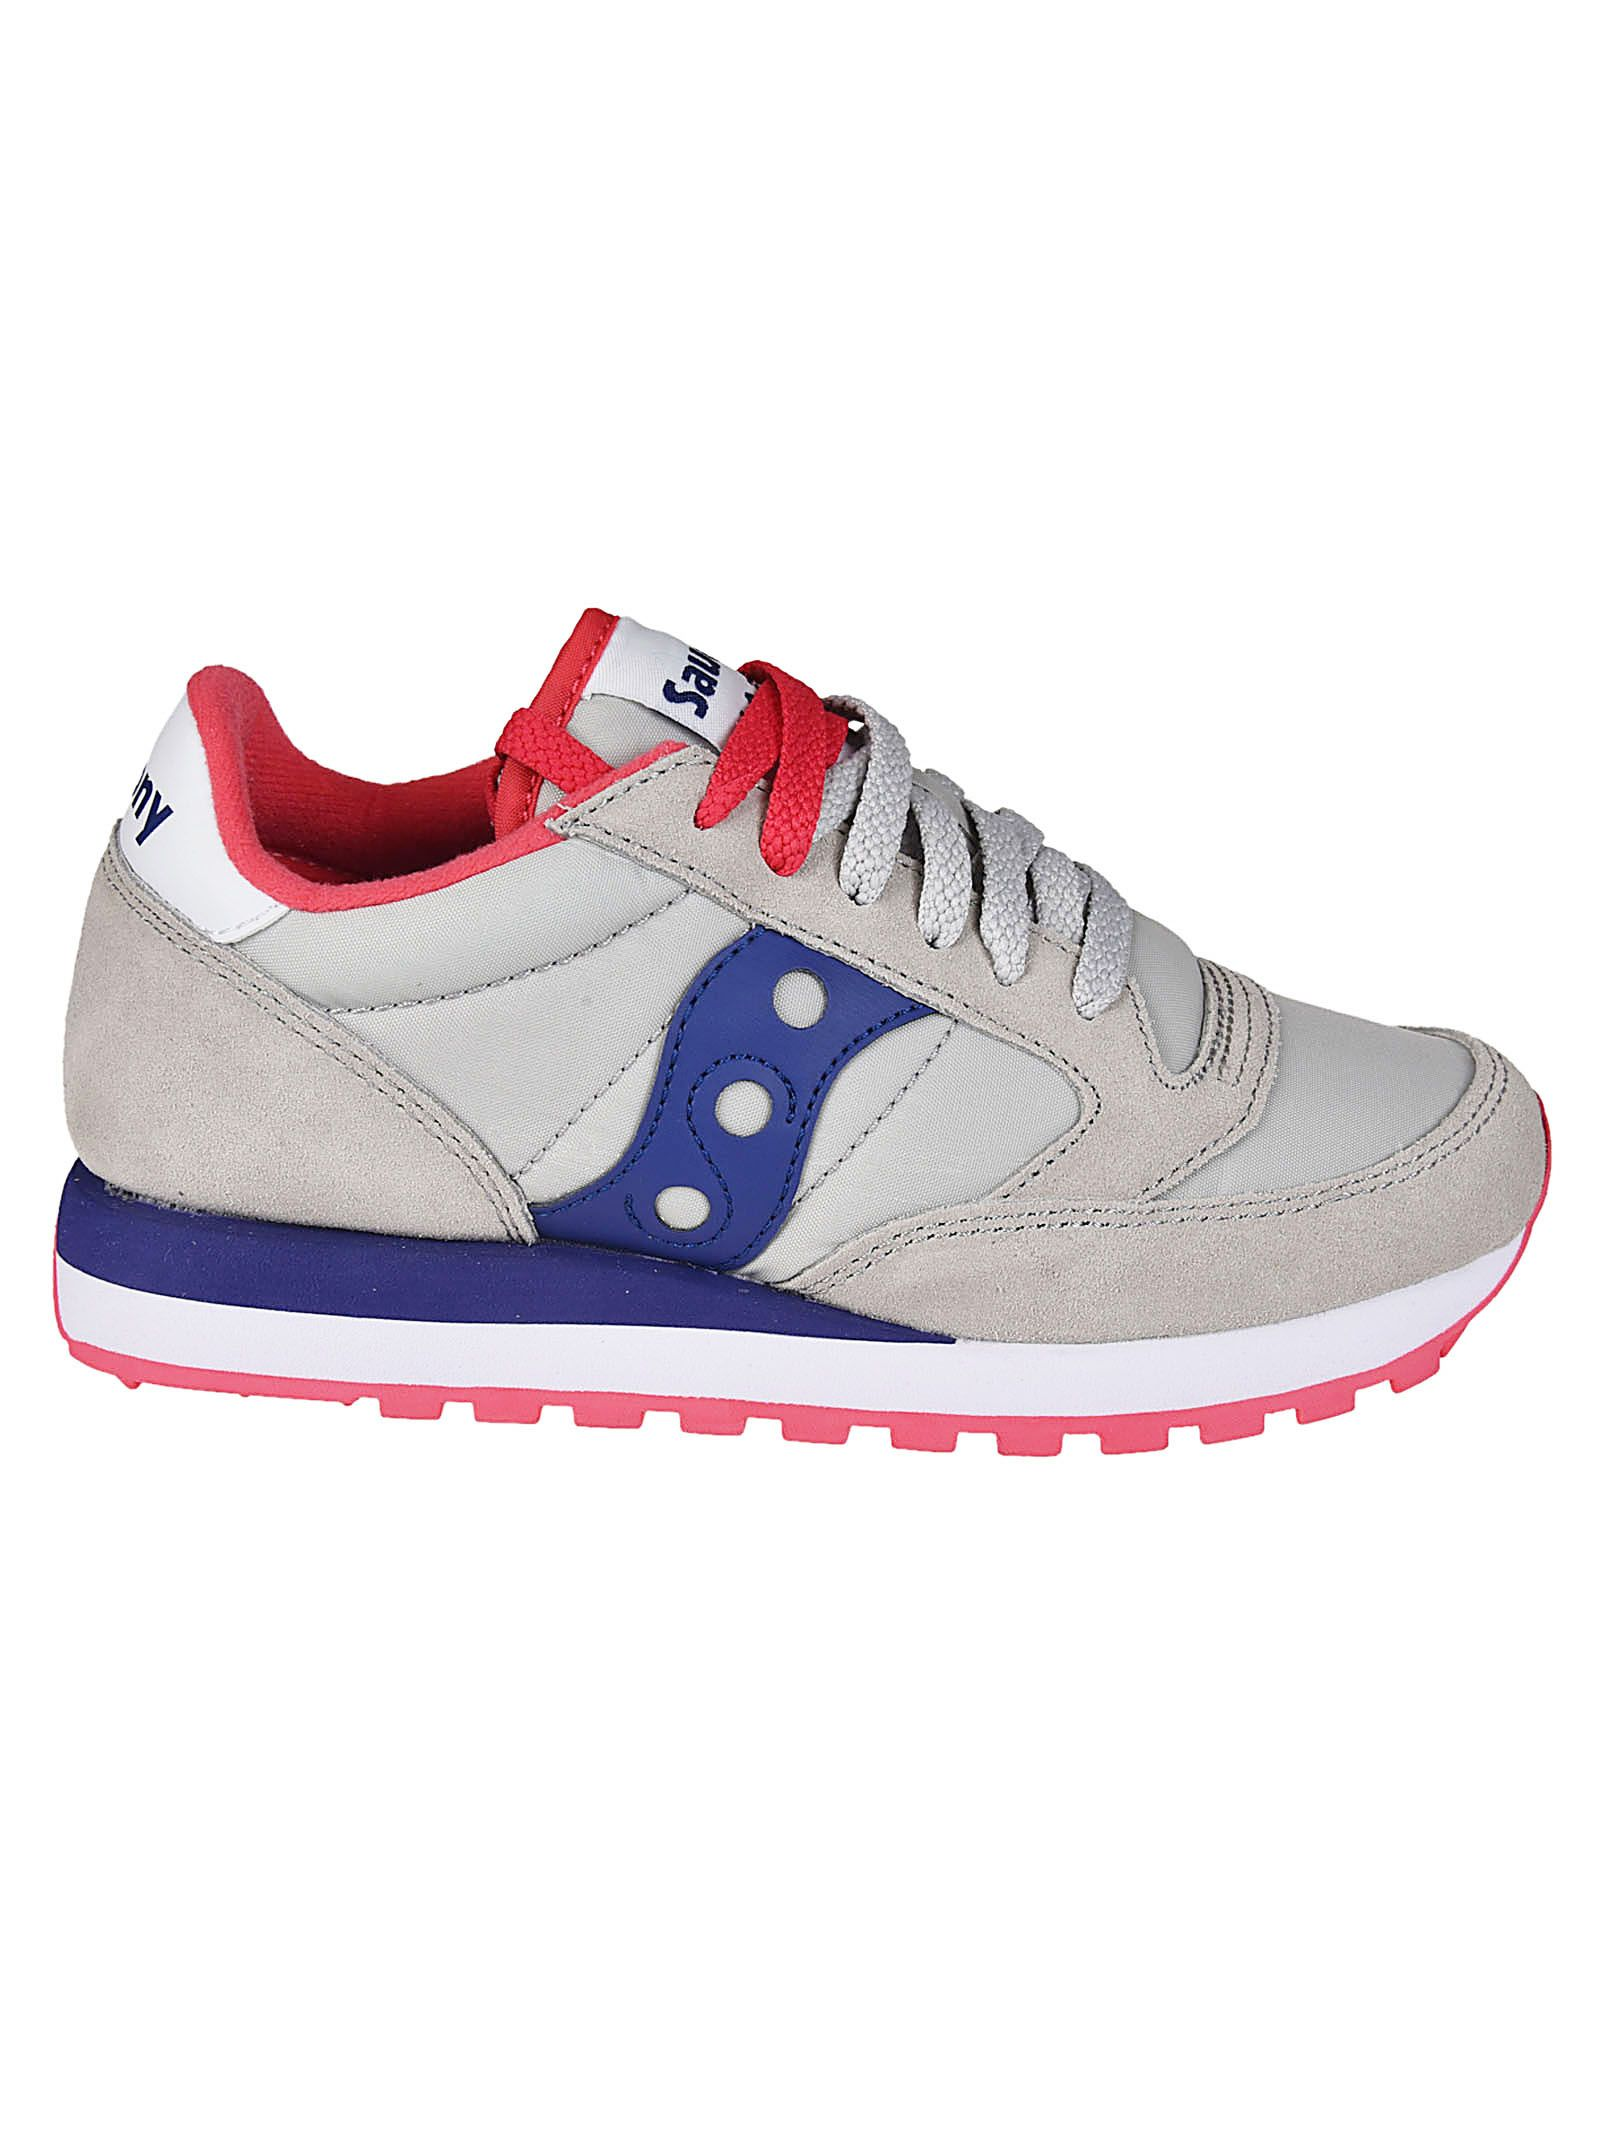 99906ddacb00 Saucony Saucony Jazz Original Sneakers - Basic - 10509400